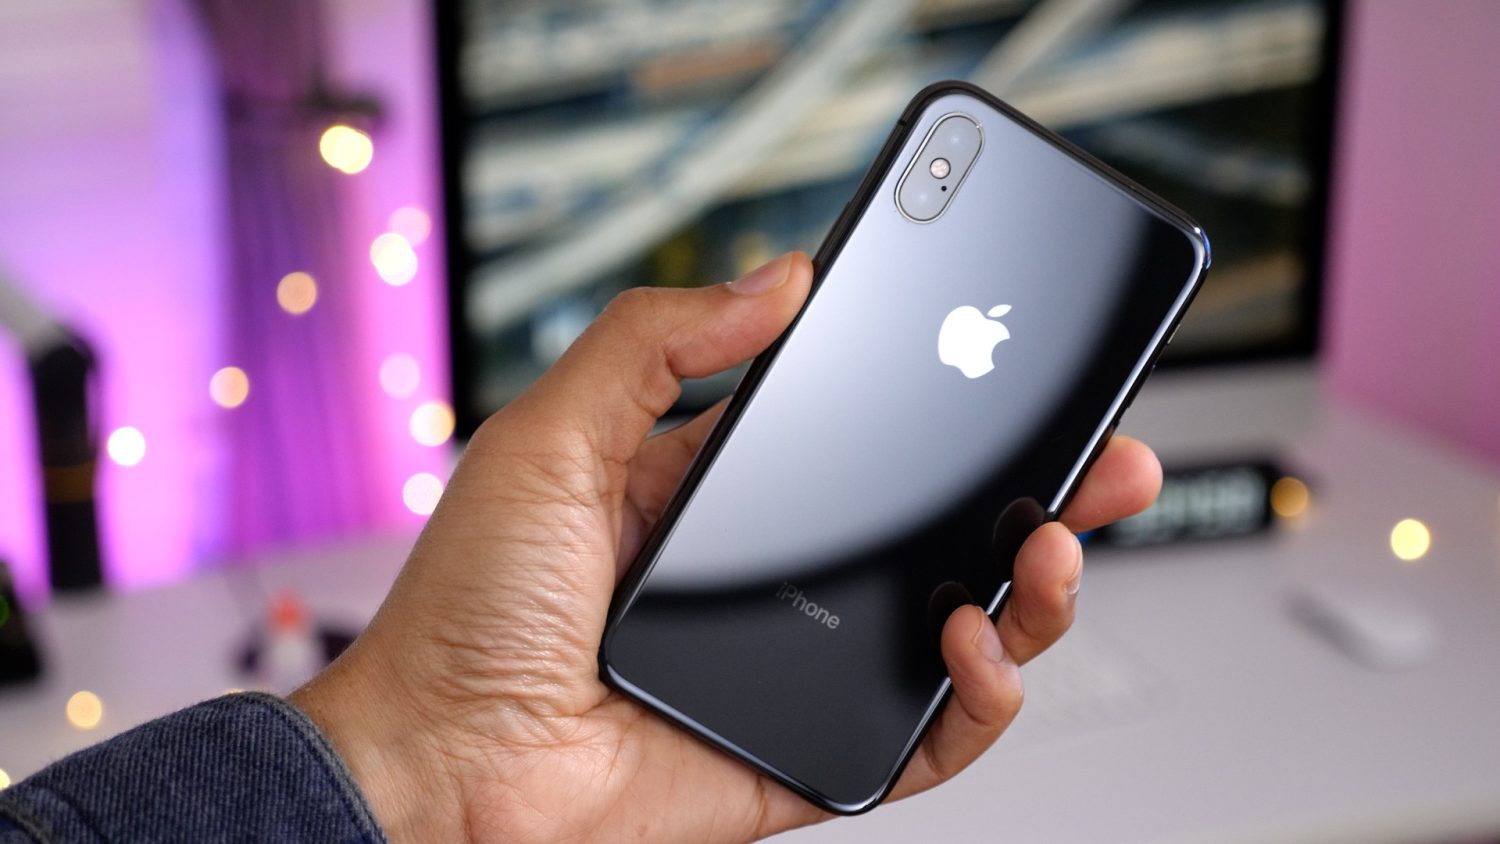 Apple is now offering certified refurbished iPhone X models from $769